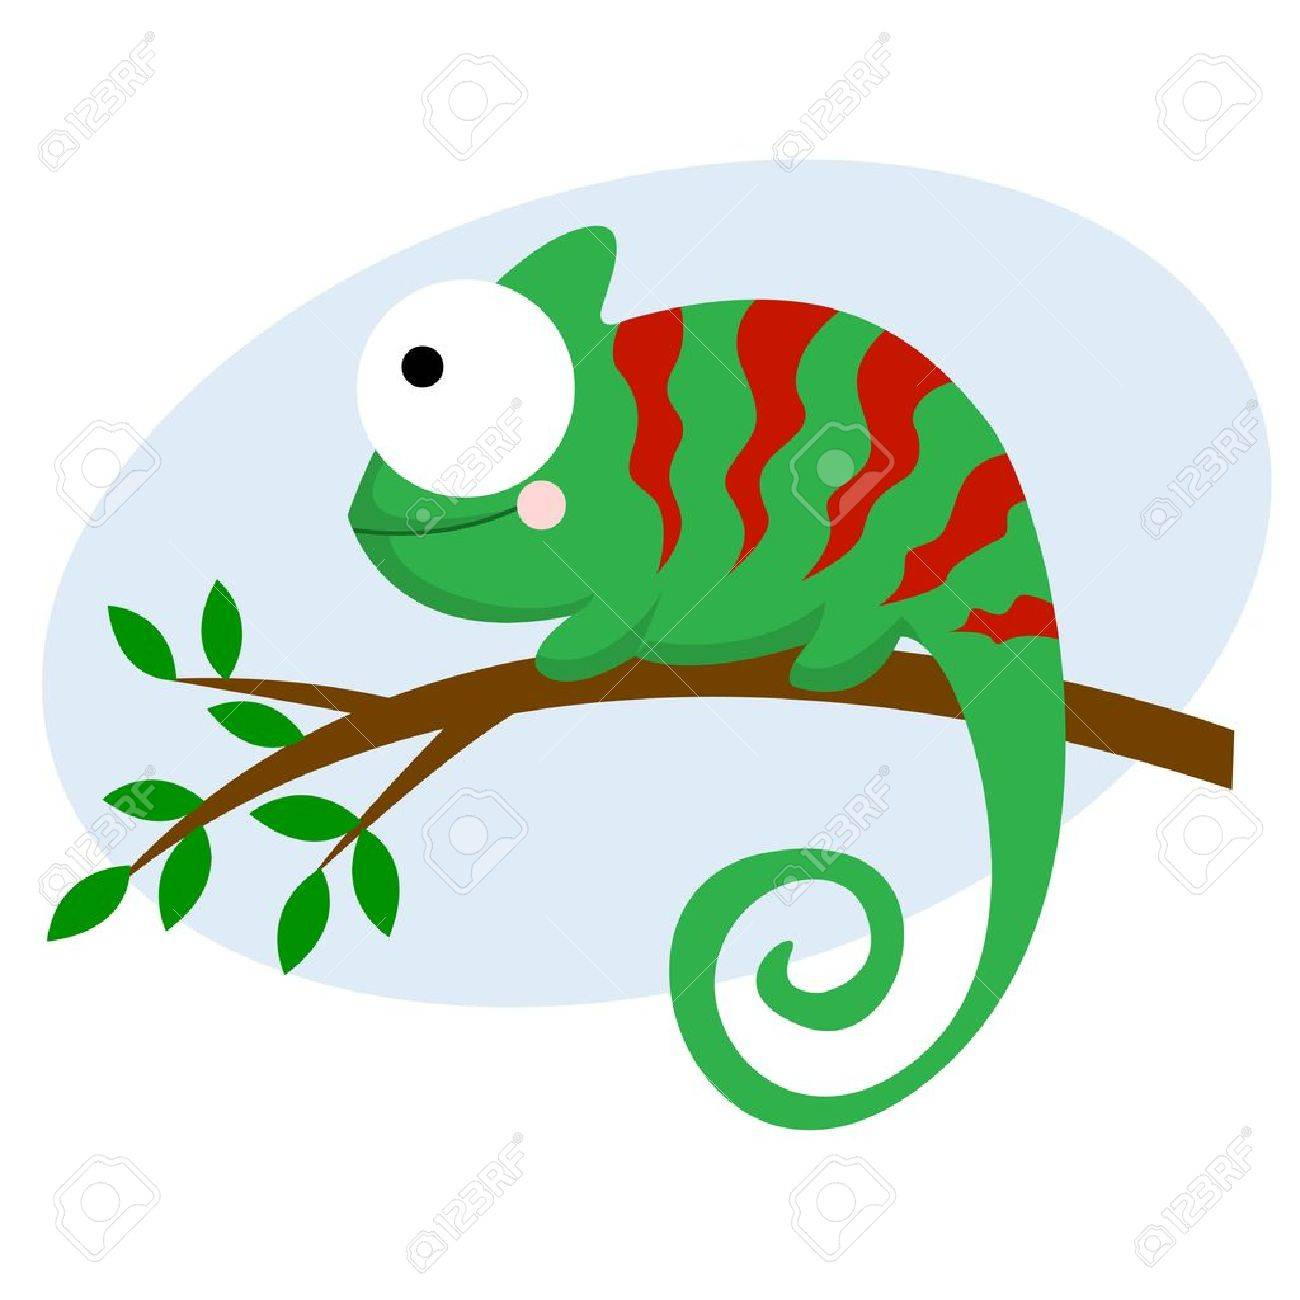 Chameleon Stock Vector - 21051145